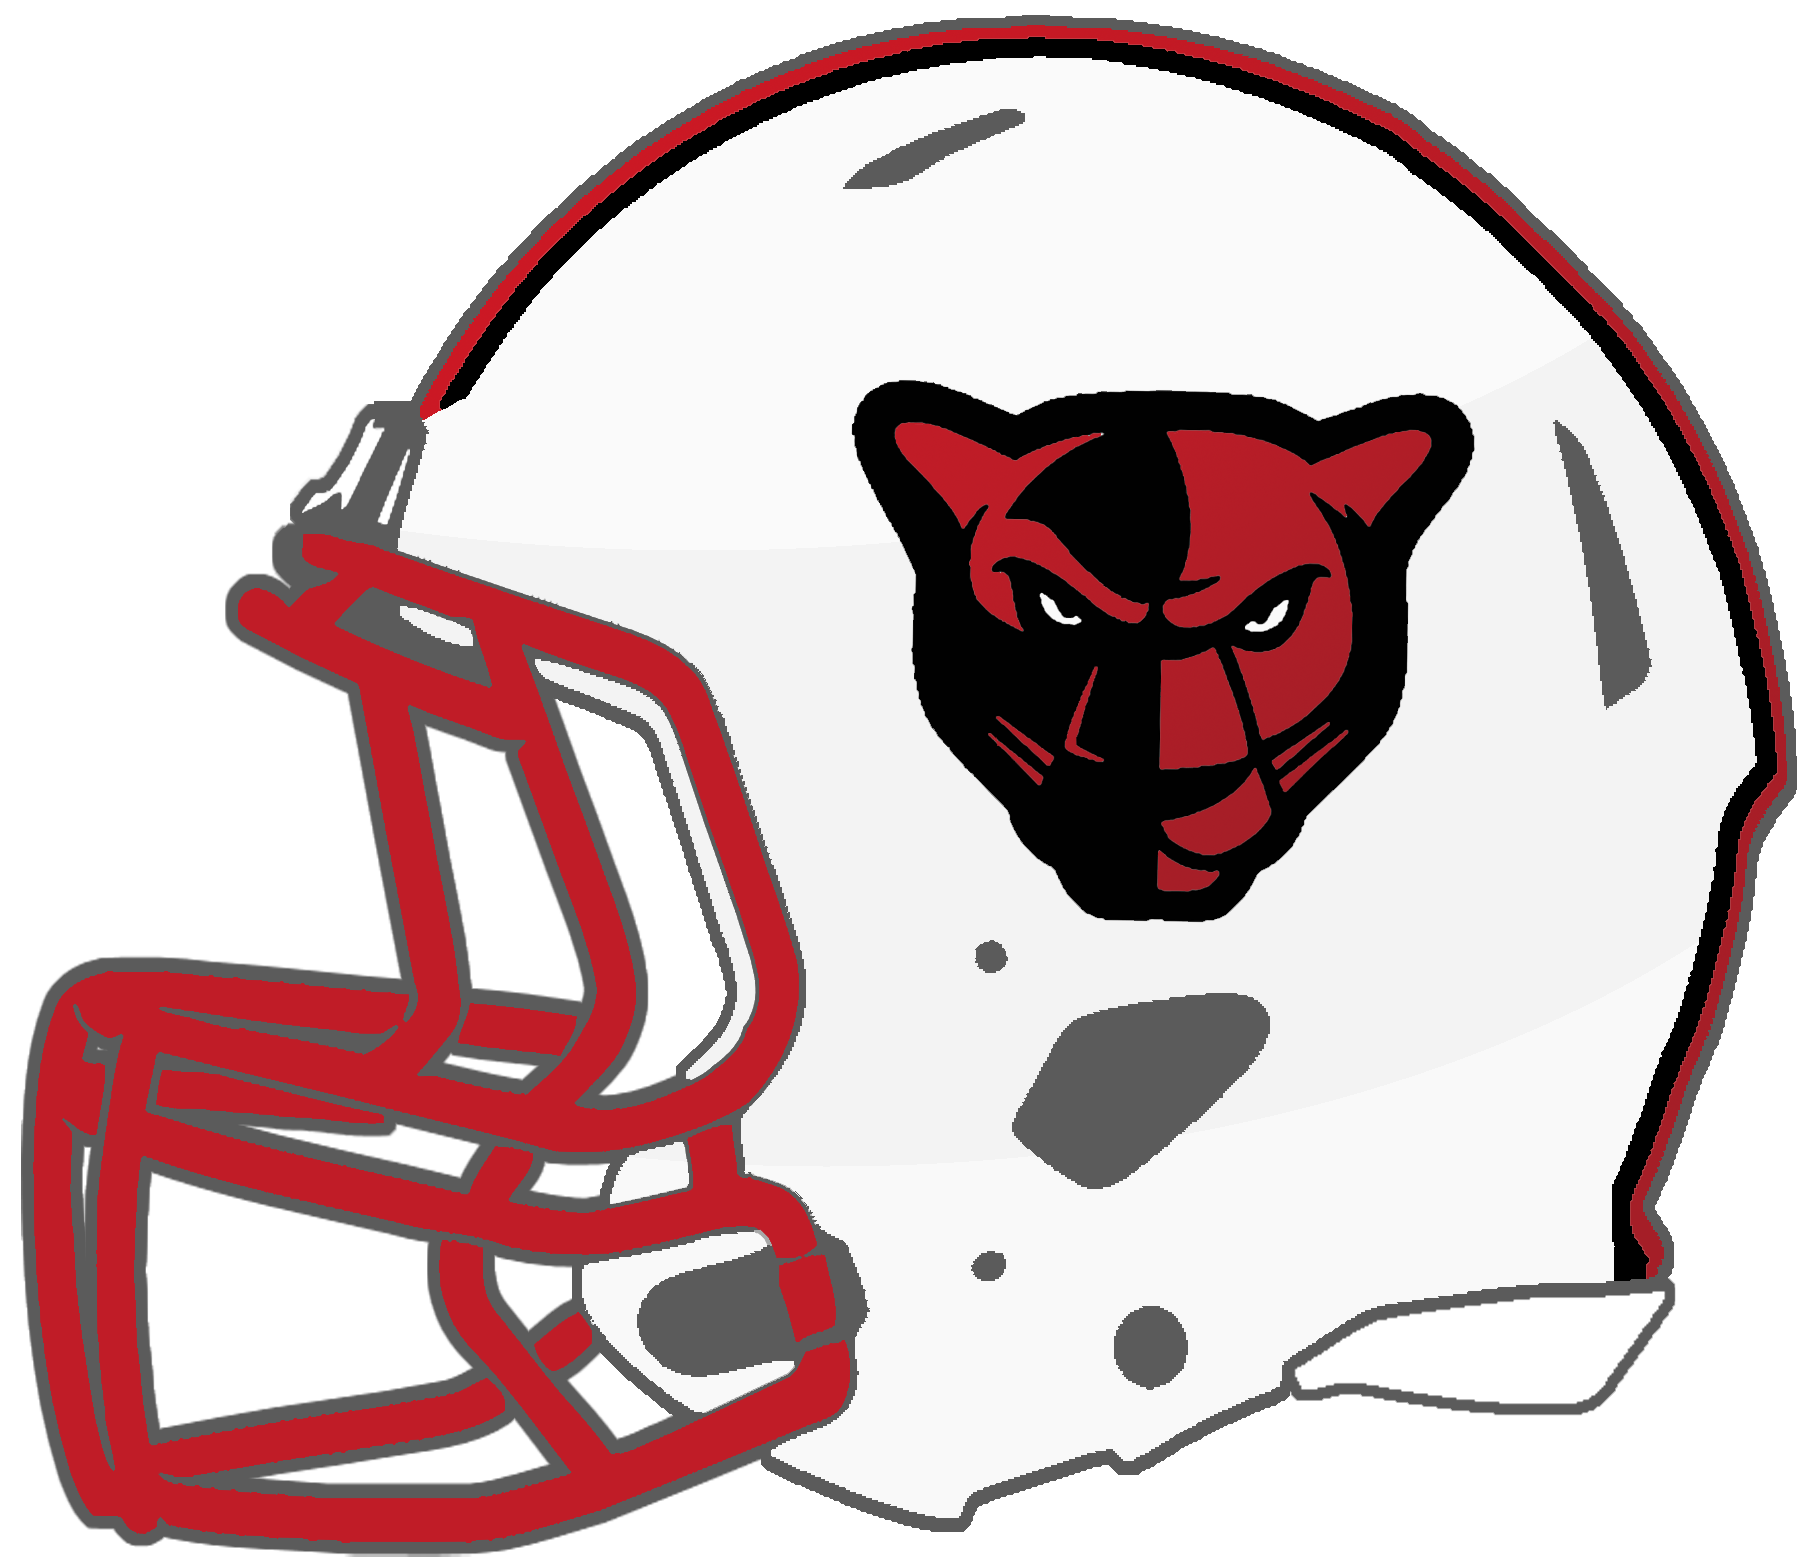 Panthers football helmet clipart image black and white Mississippi High School Football Helmets: 6A image black and white